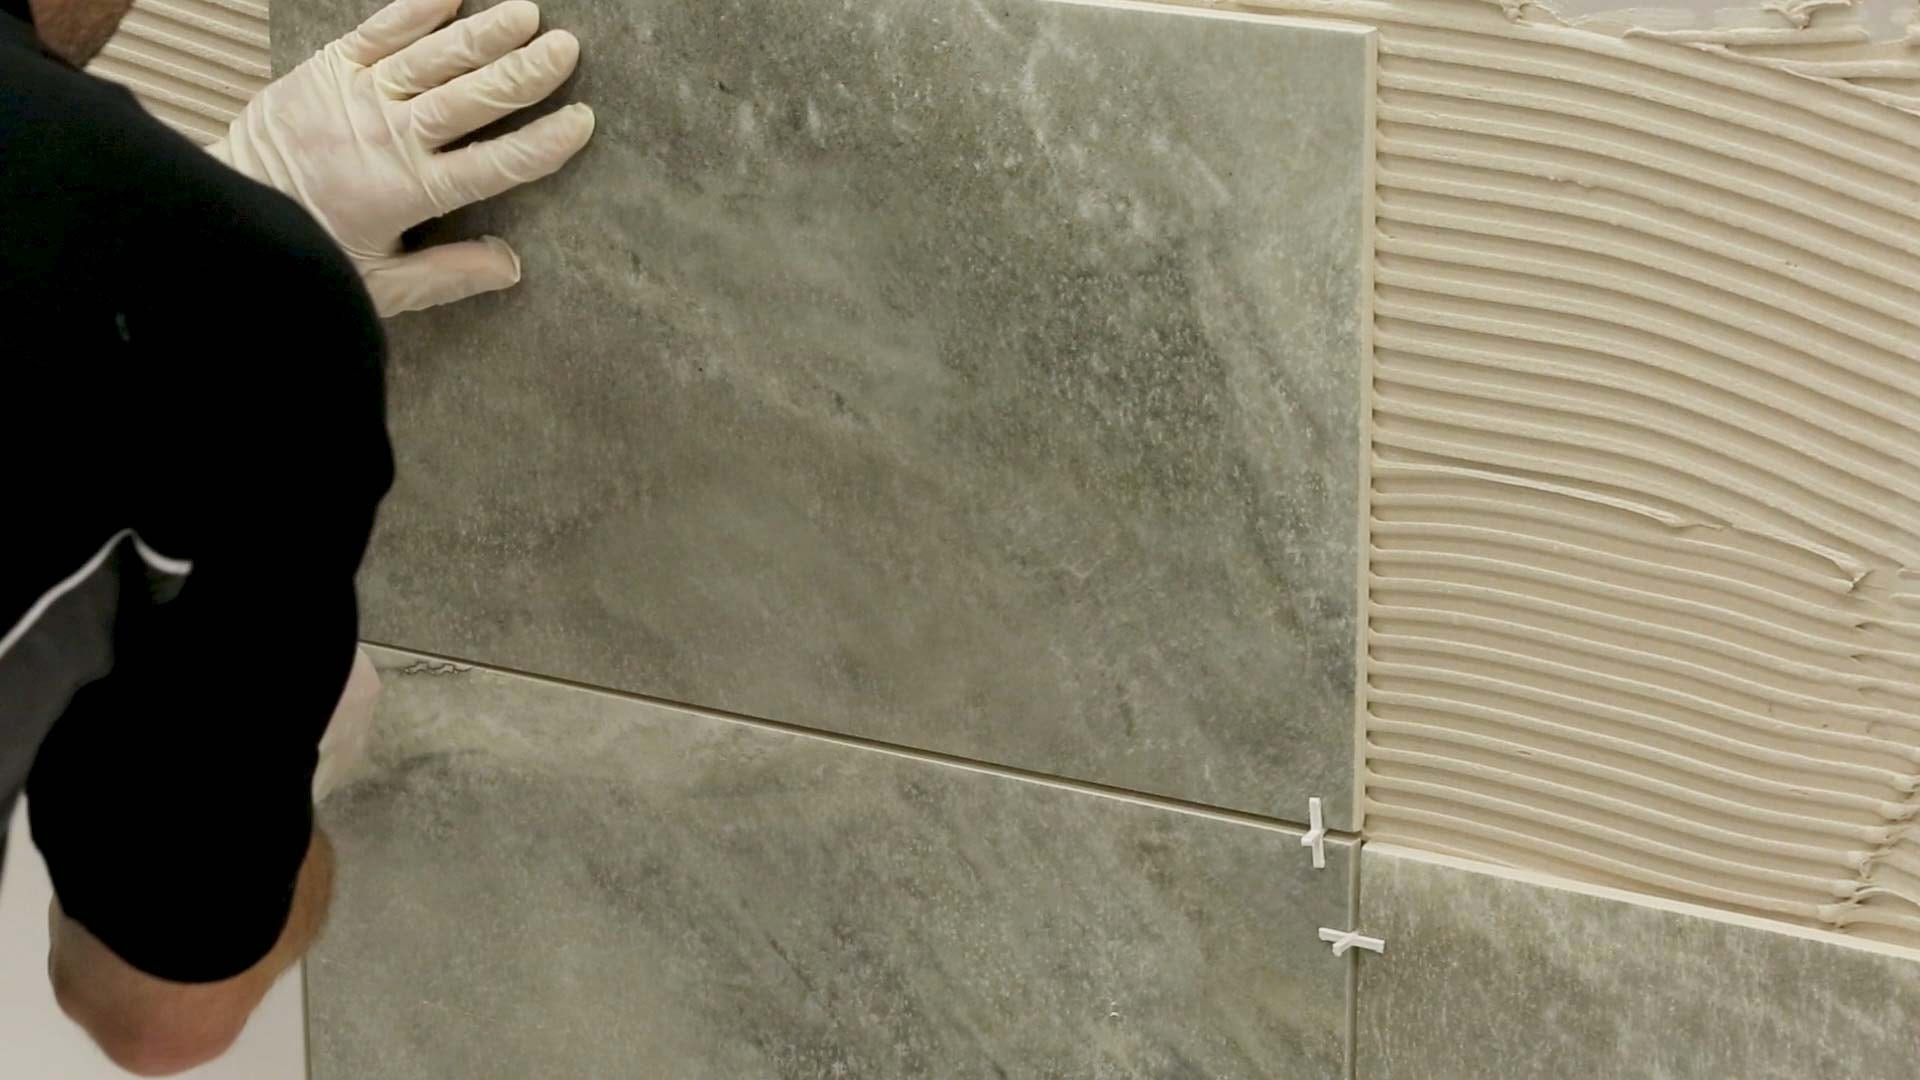 Repeat separating tiles using a spacer